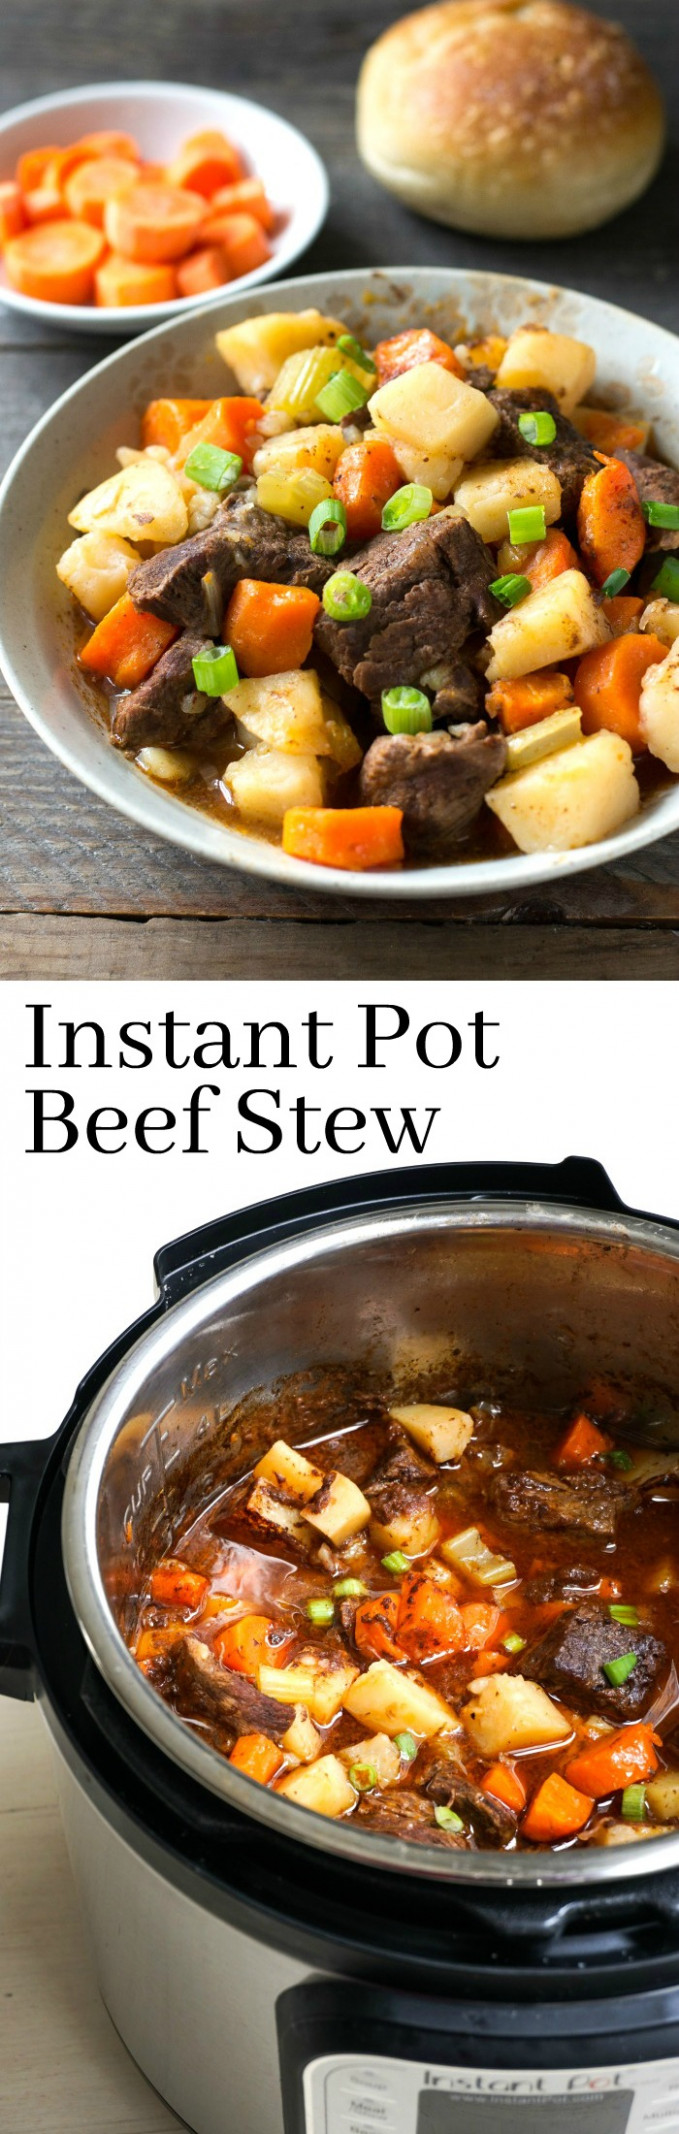 The Best Instant Pot Beef Stew Recipe - Easy Family Dinner